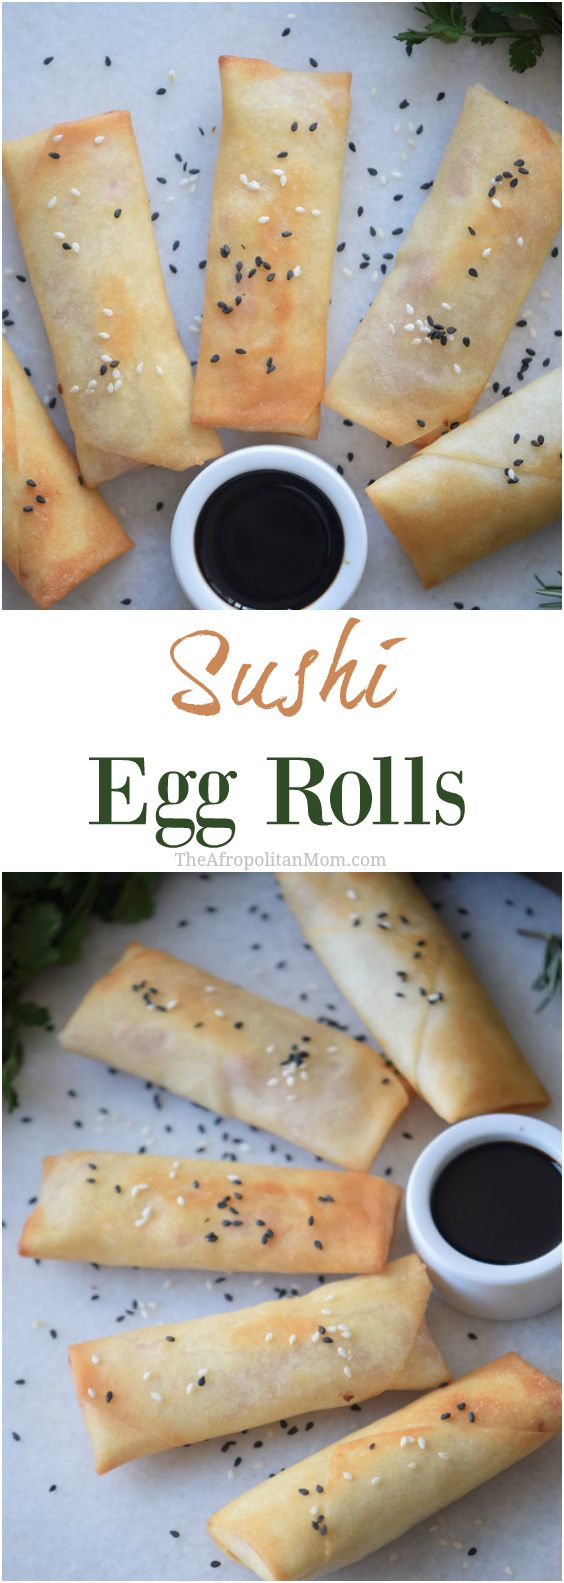 Homemade Sushi Egg Rolls an Easy finger food recipes for a crowd. Perfect for a family gathering or large parties. No more takeaways.